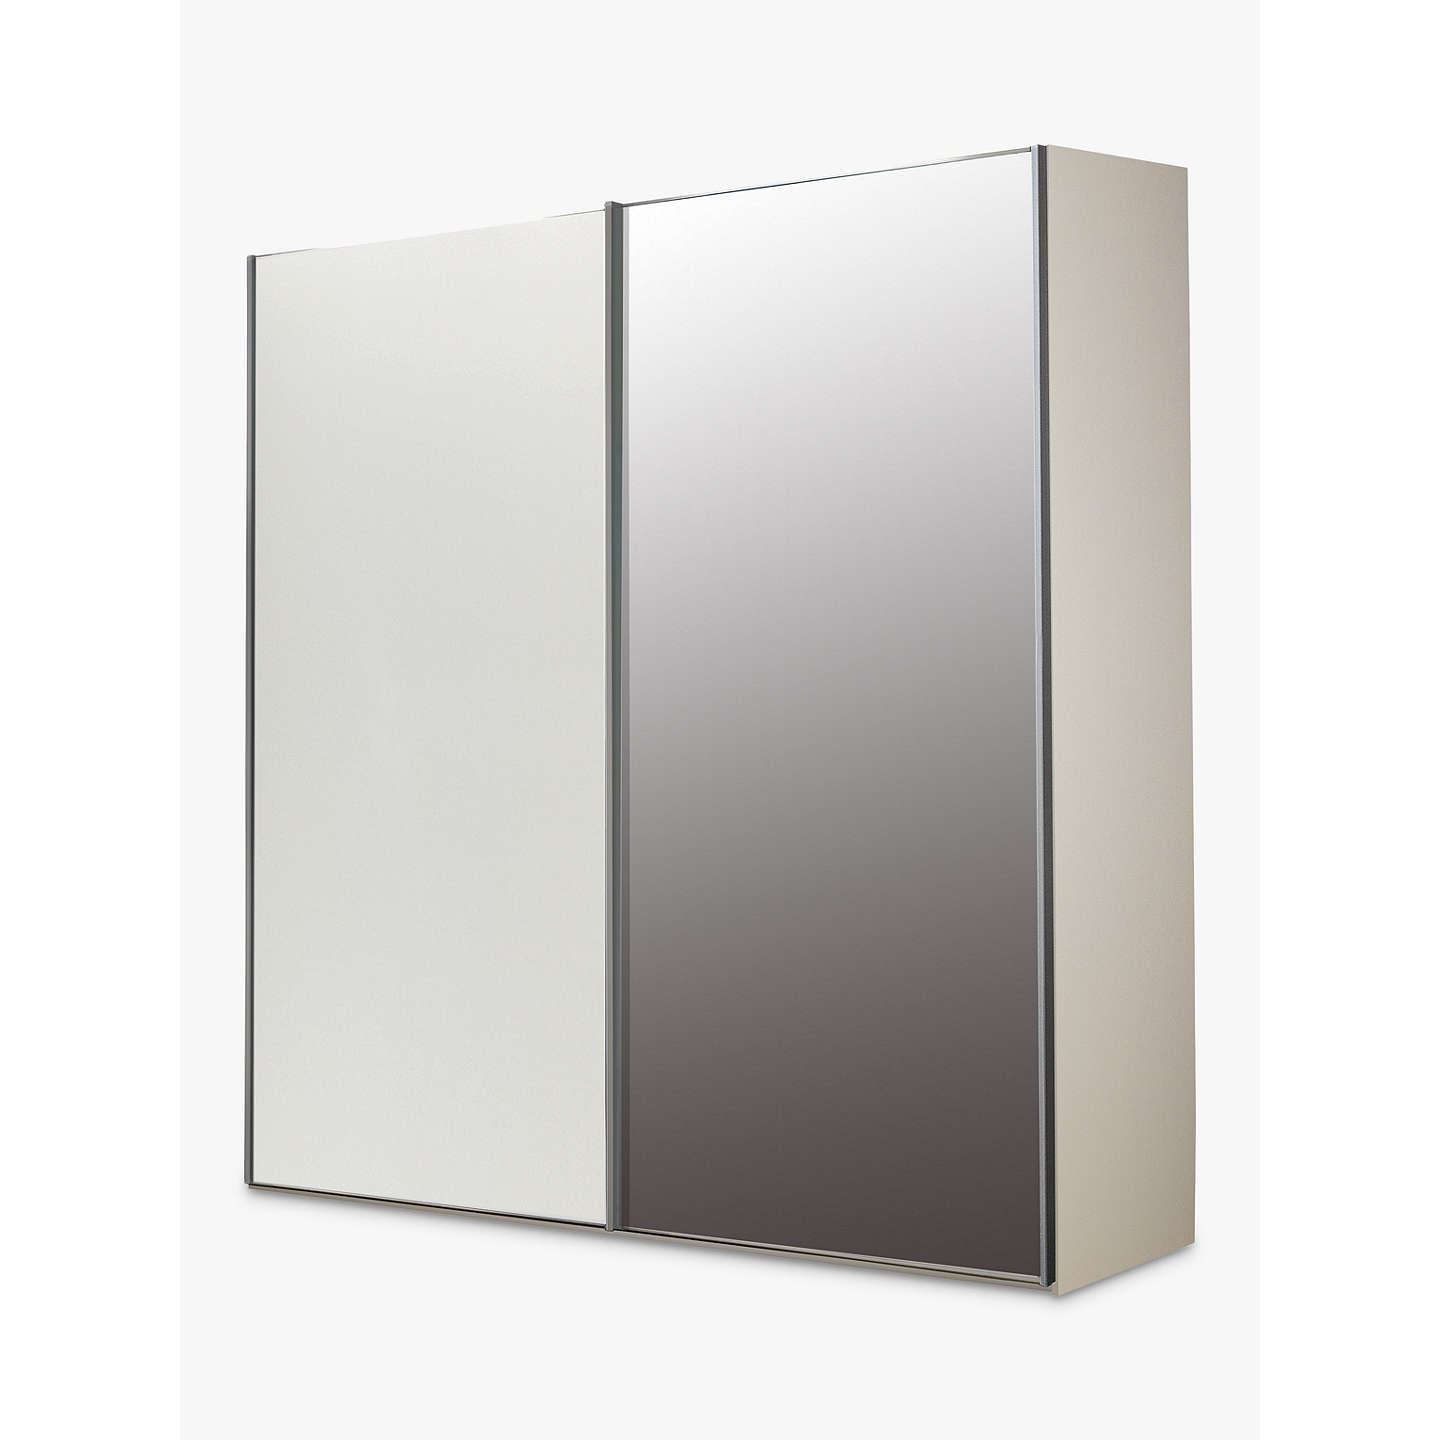 Buyjohn Lewis Special Elstra 200Cm Mirrored Sliding Door Wardrobe, Mirroralpine